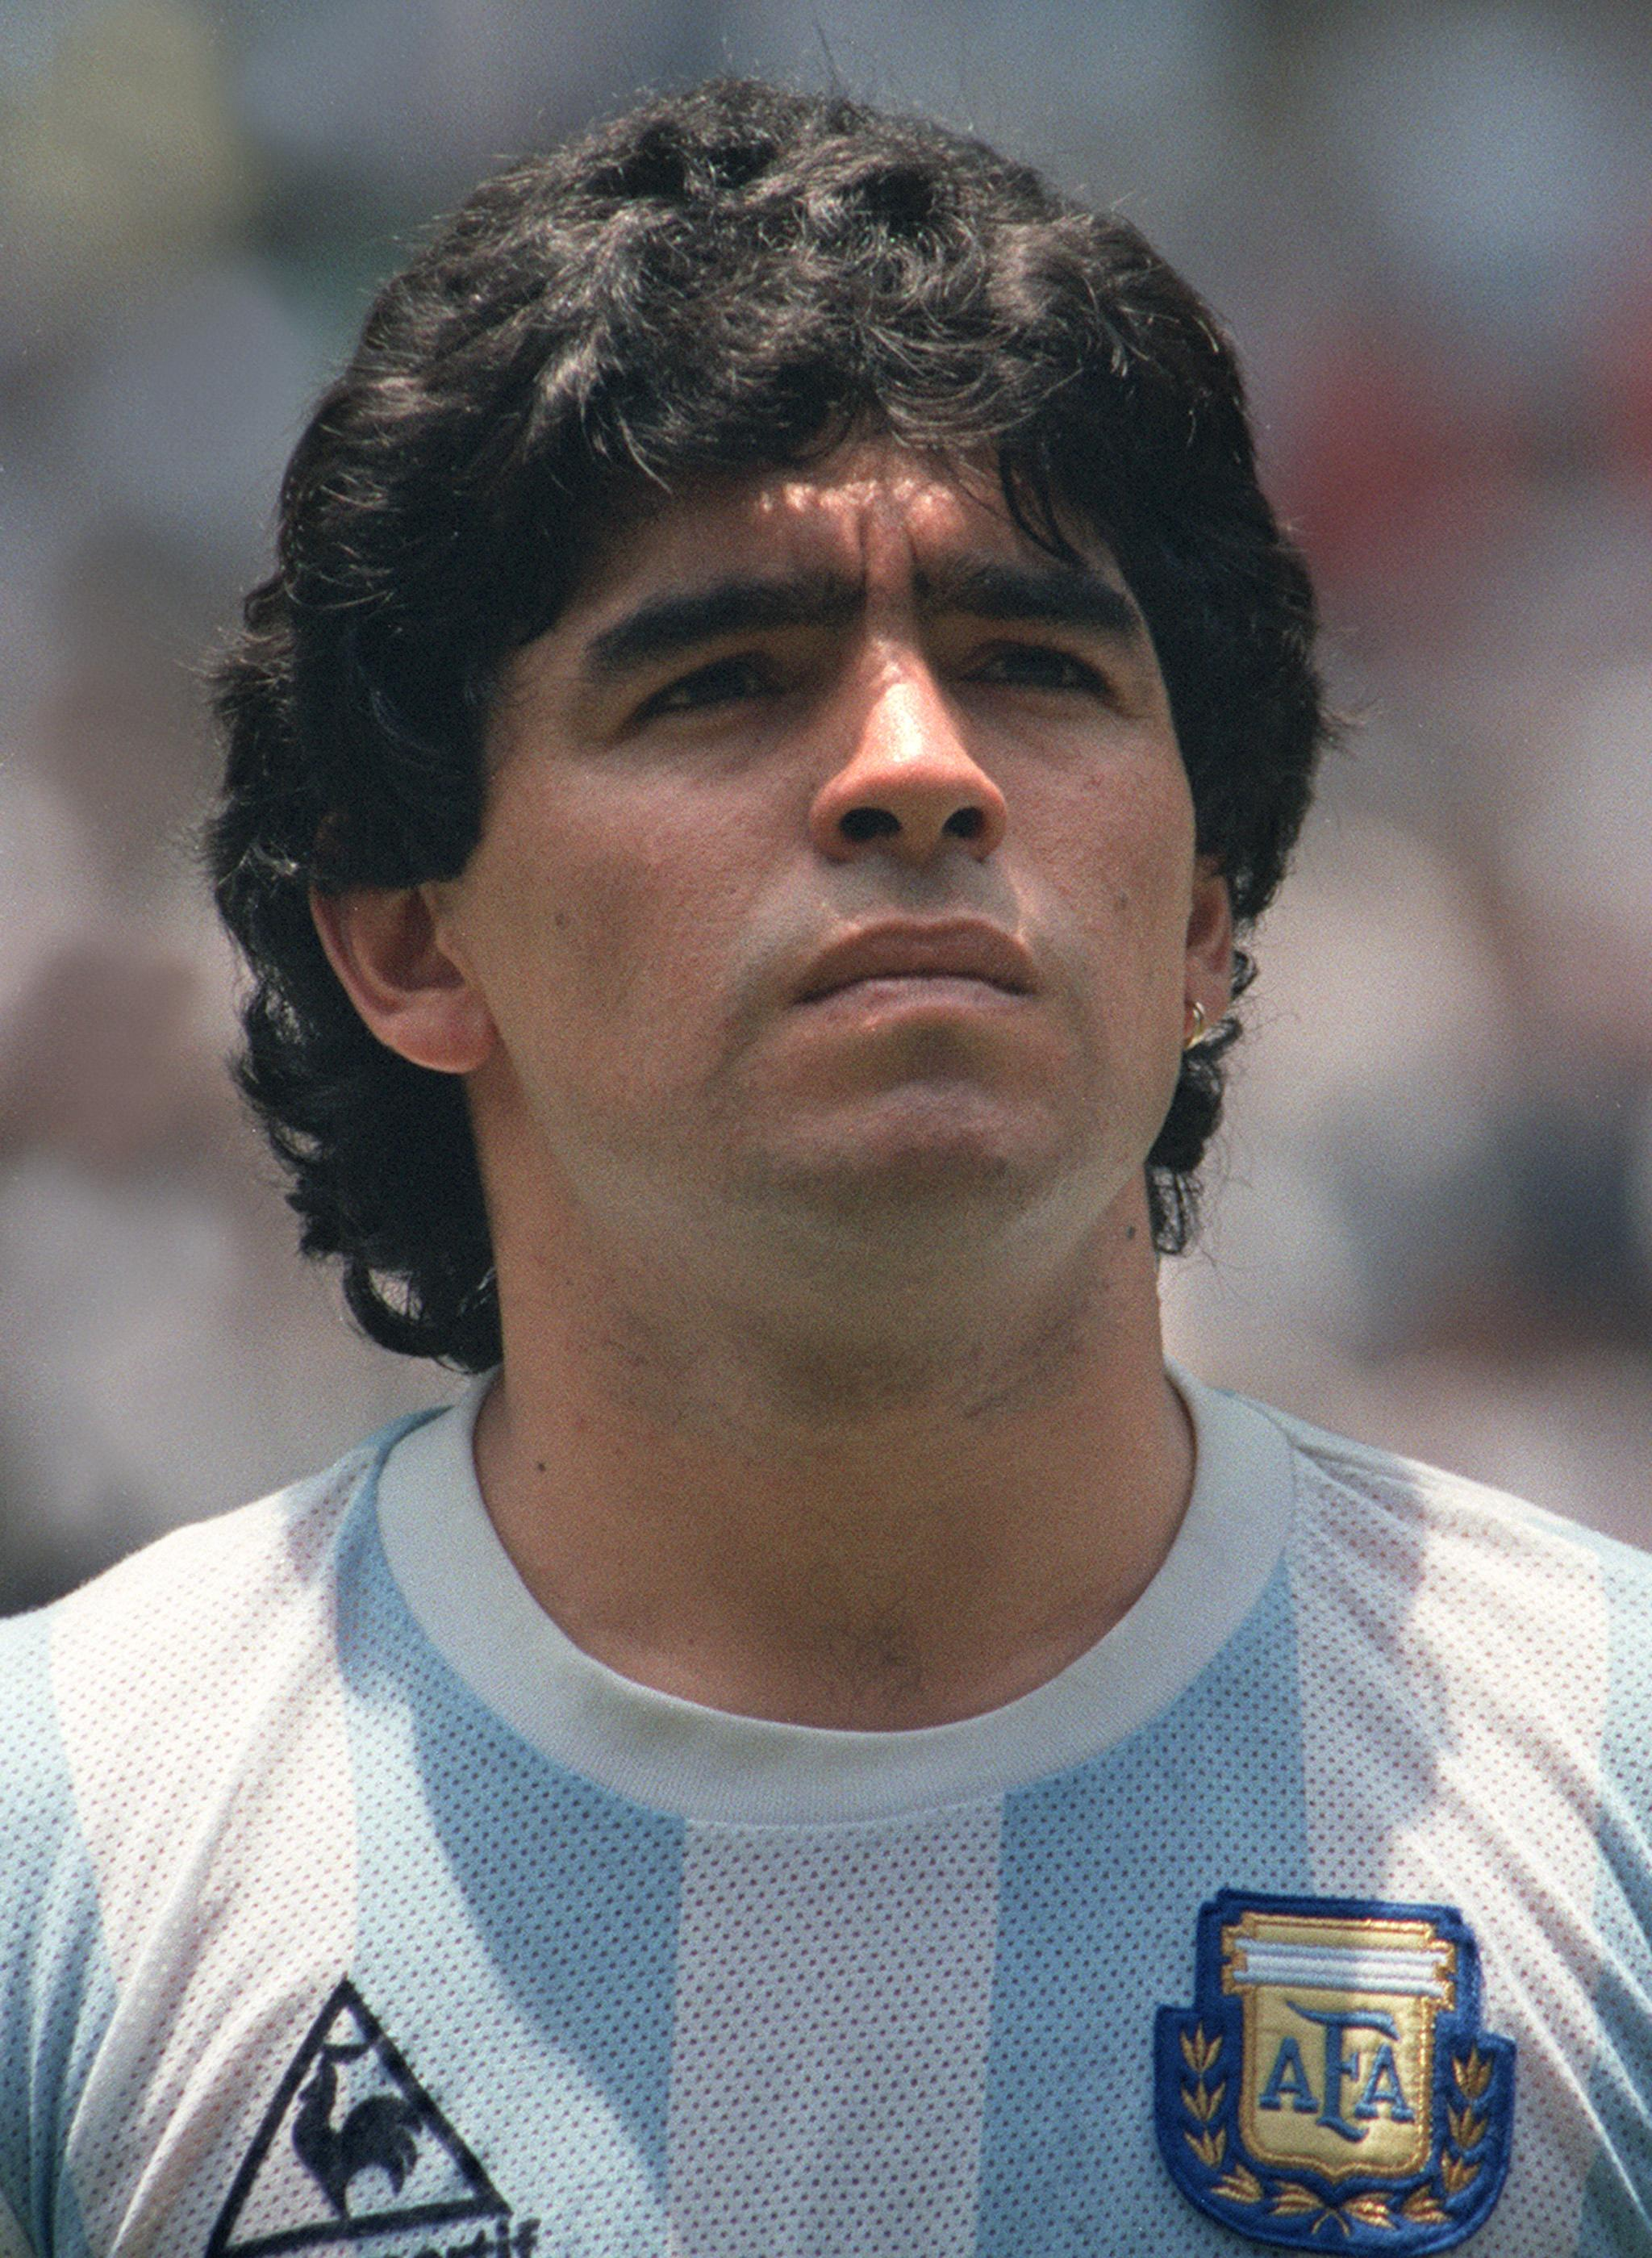 http://cafasorridente.files.wordpress.com/2009/10/16563maradona411mf.jpg